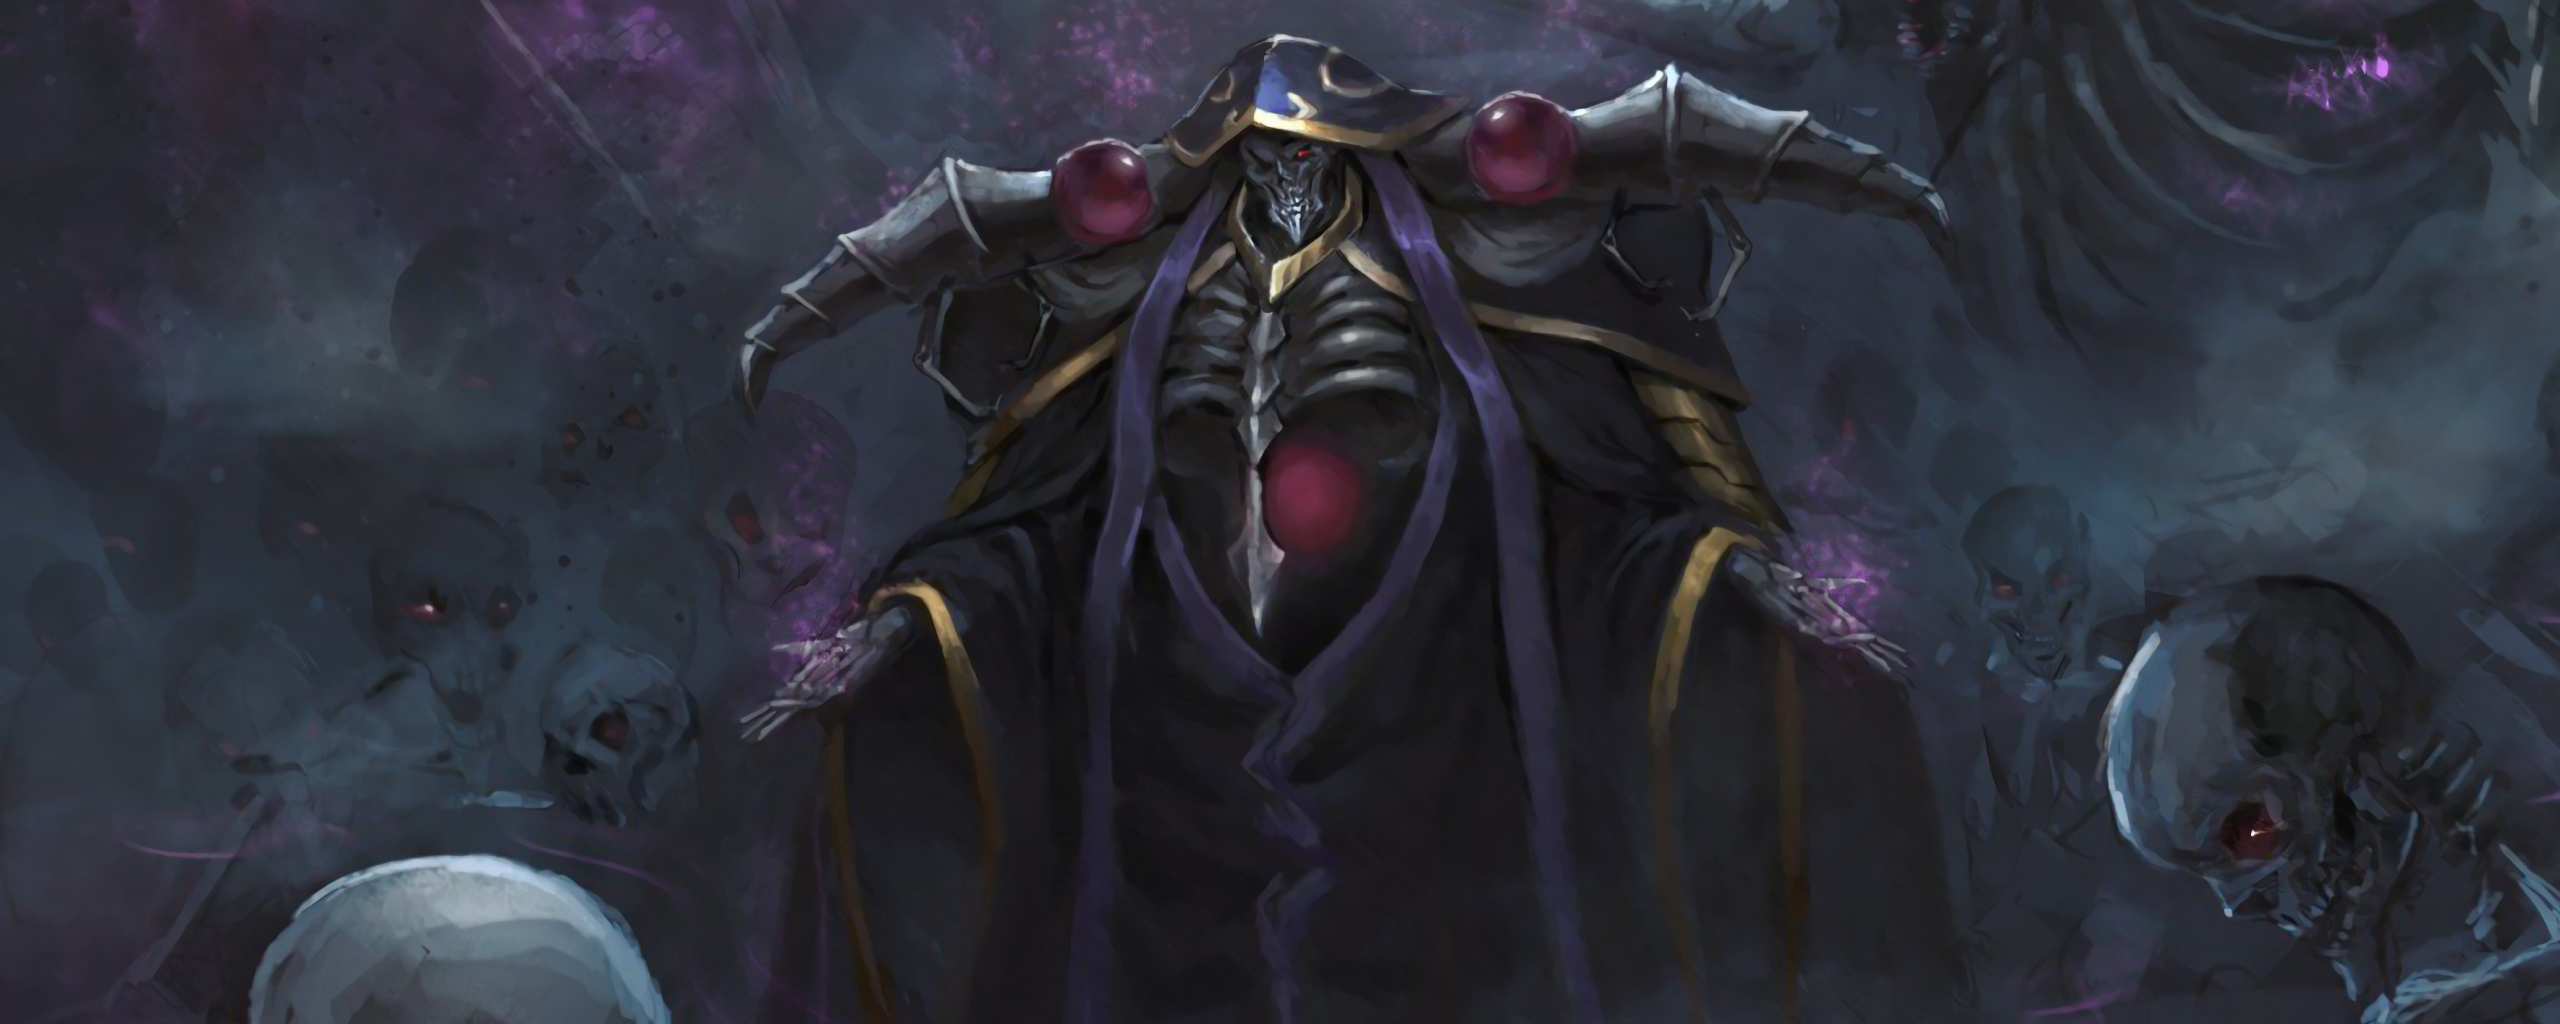 Downaload Overlord King And Warriors Art Wallpaper: 2560x1024 Wallpapers